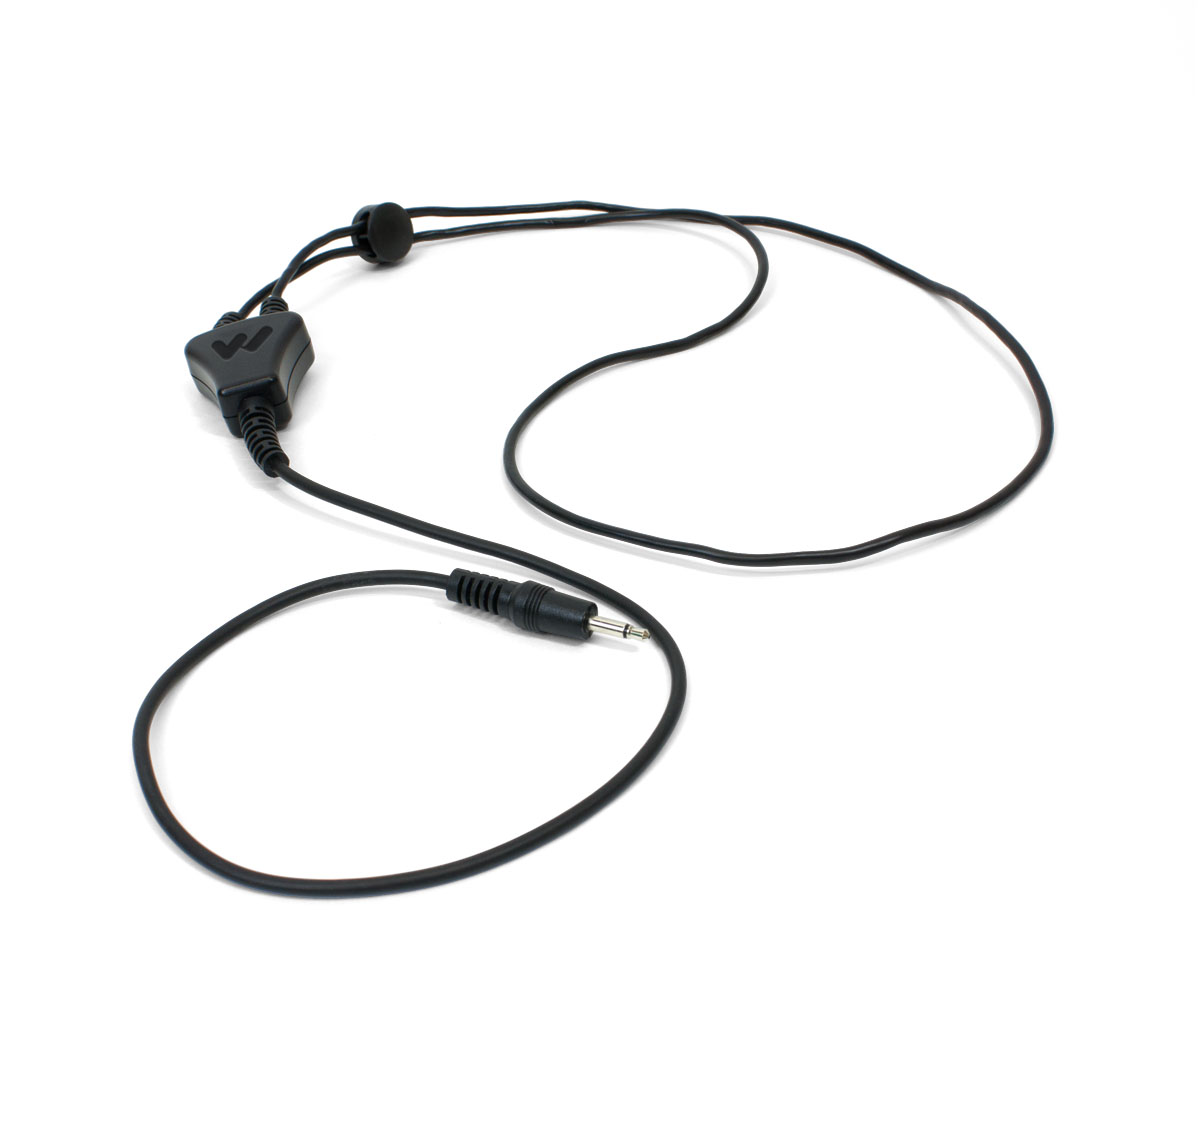 Williams Sound Nkl 001 18 Neckloop With 3 5mm Plug